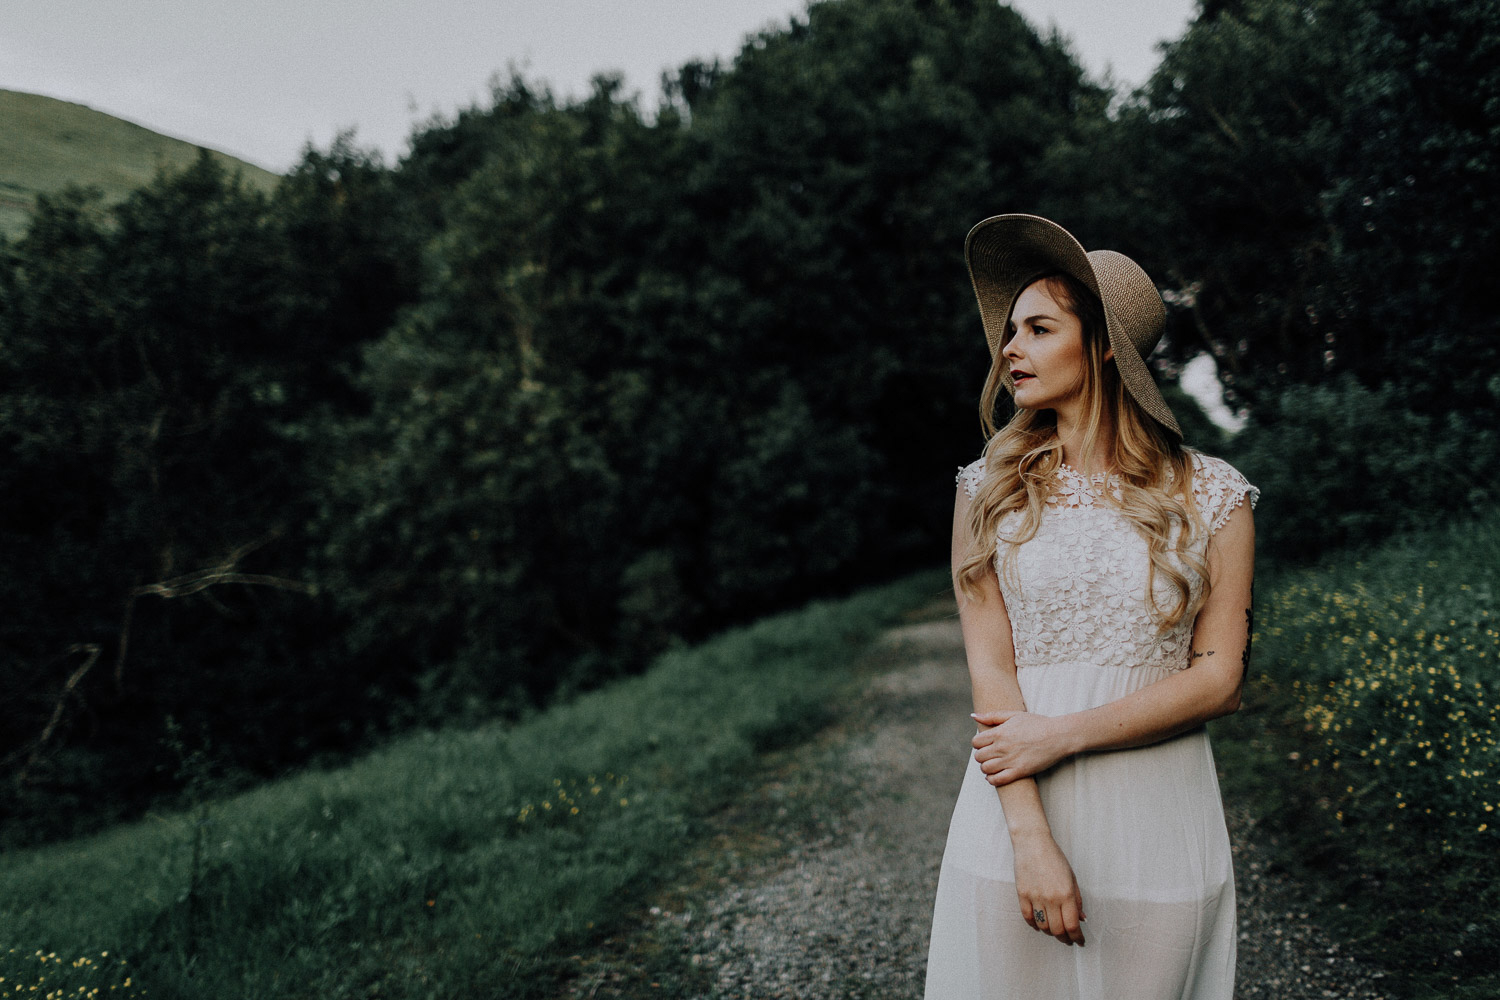 Image of bride wears a hat and looks to the left